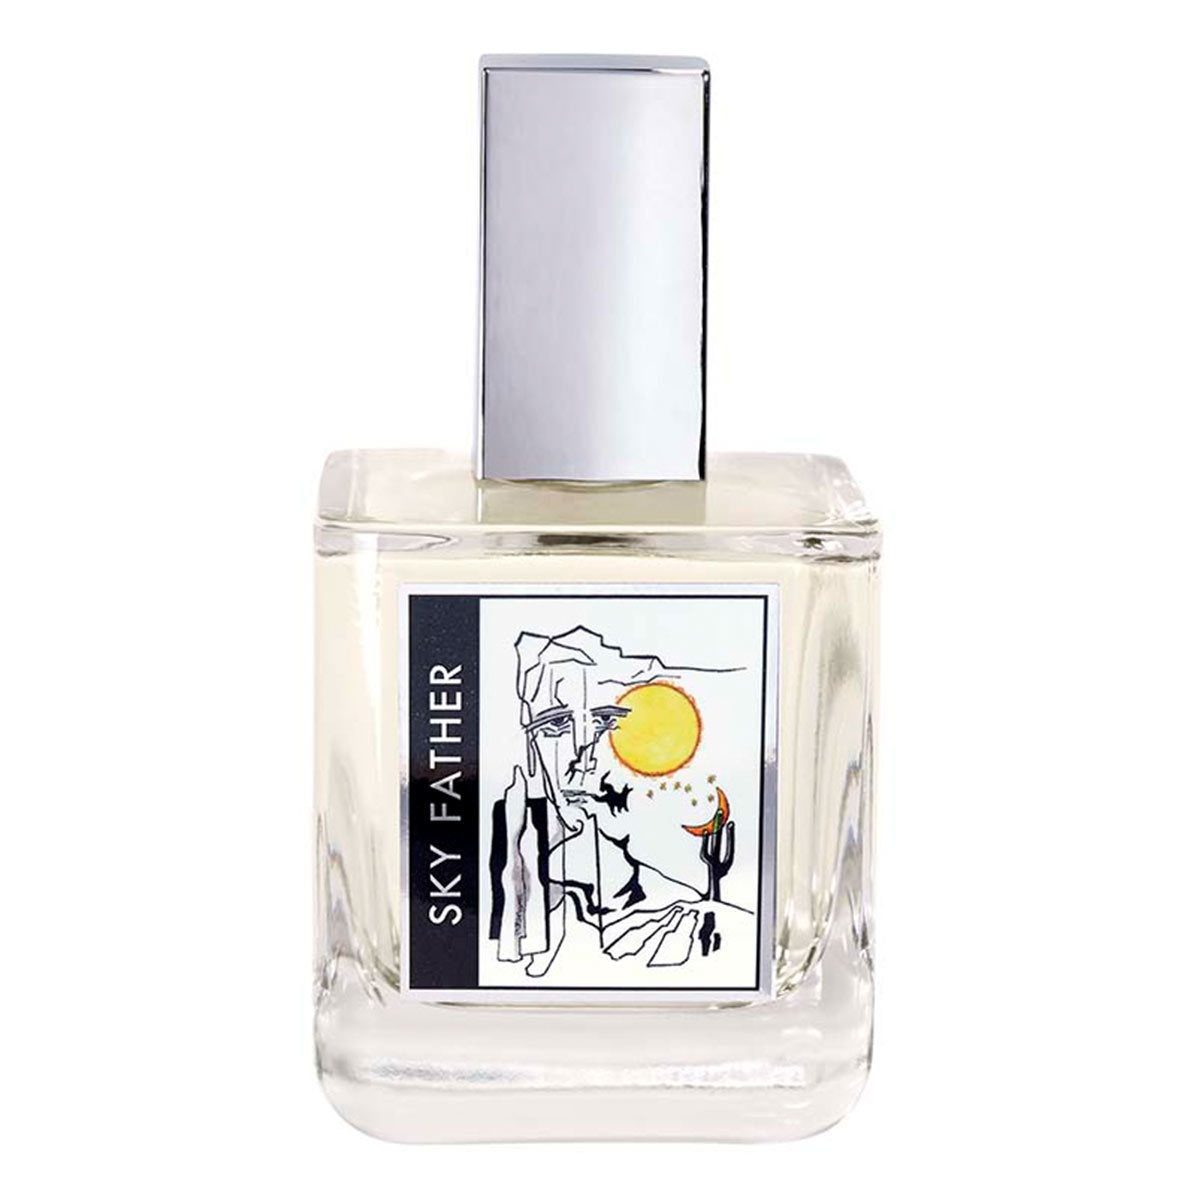 Niche Fragrance for Summer | Dame Perfumery Sky Father Eau de Parfum